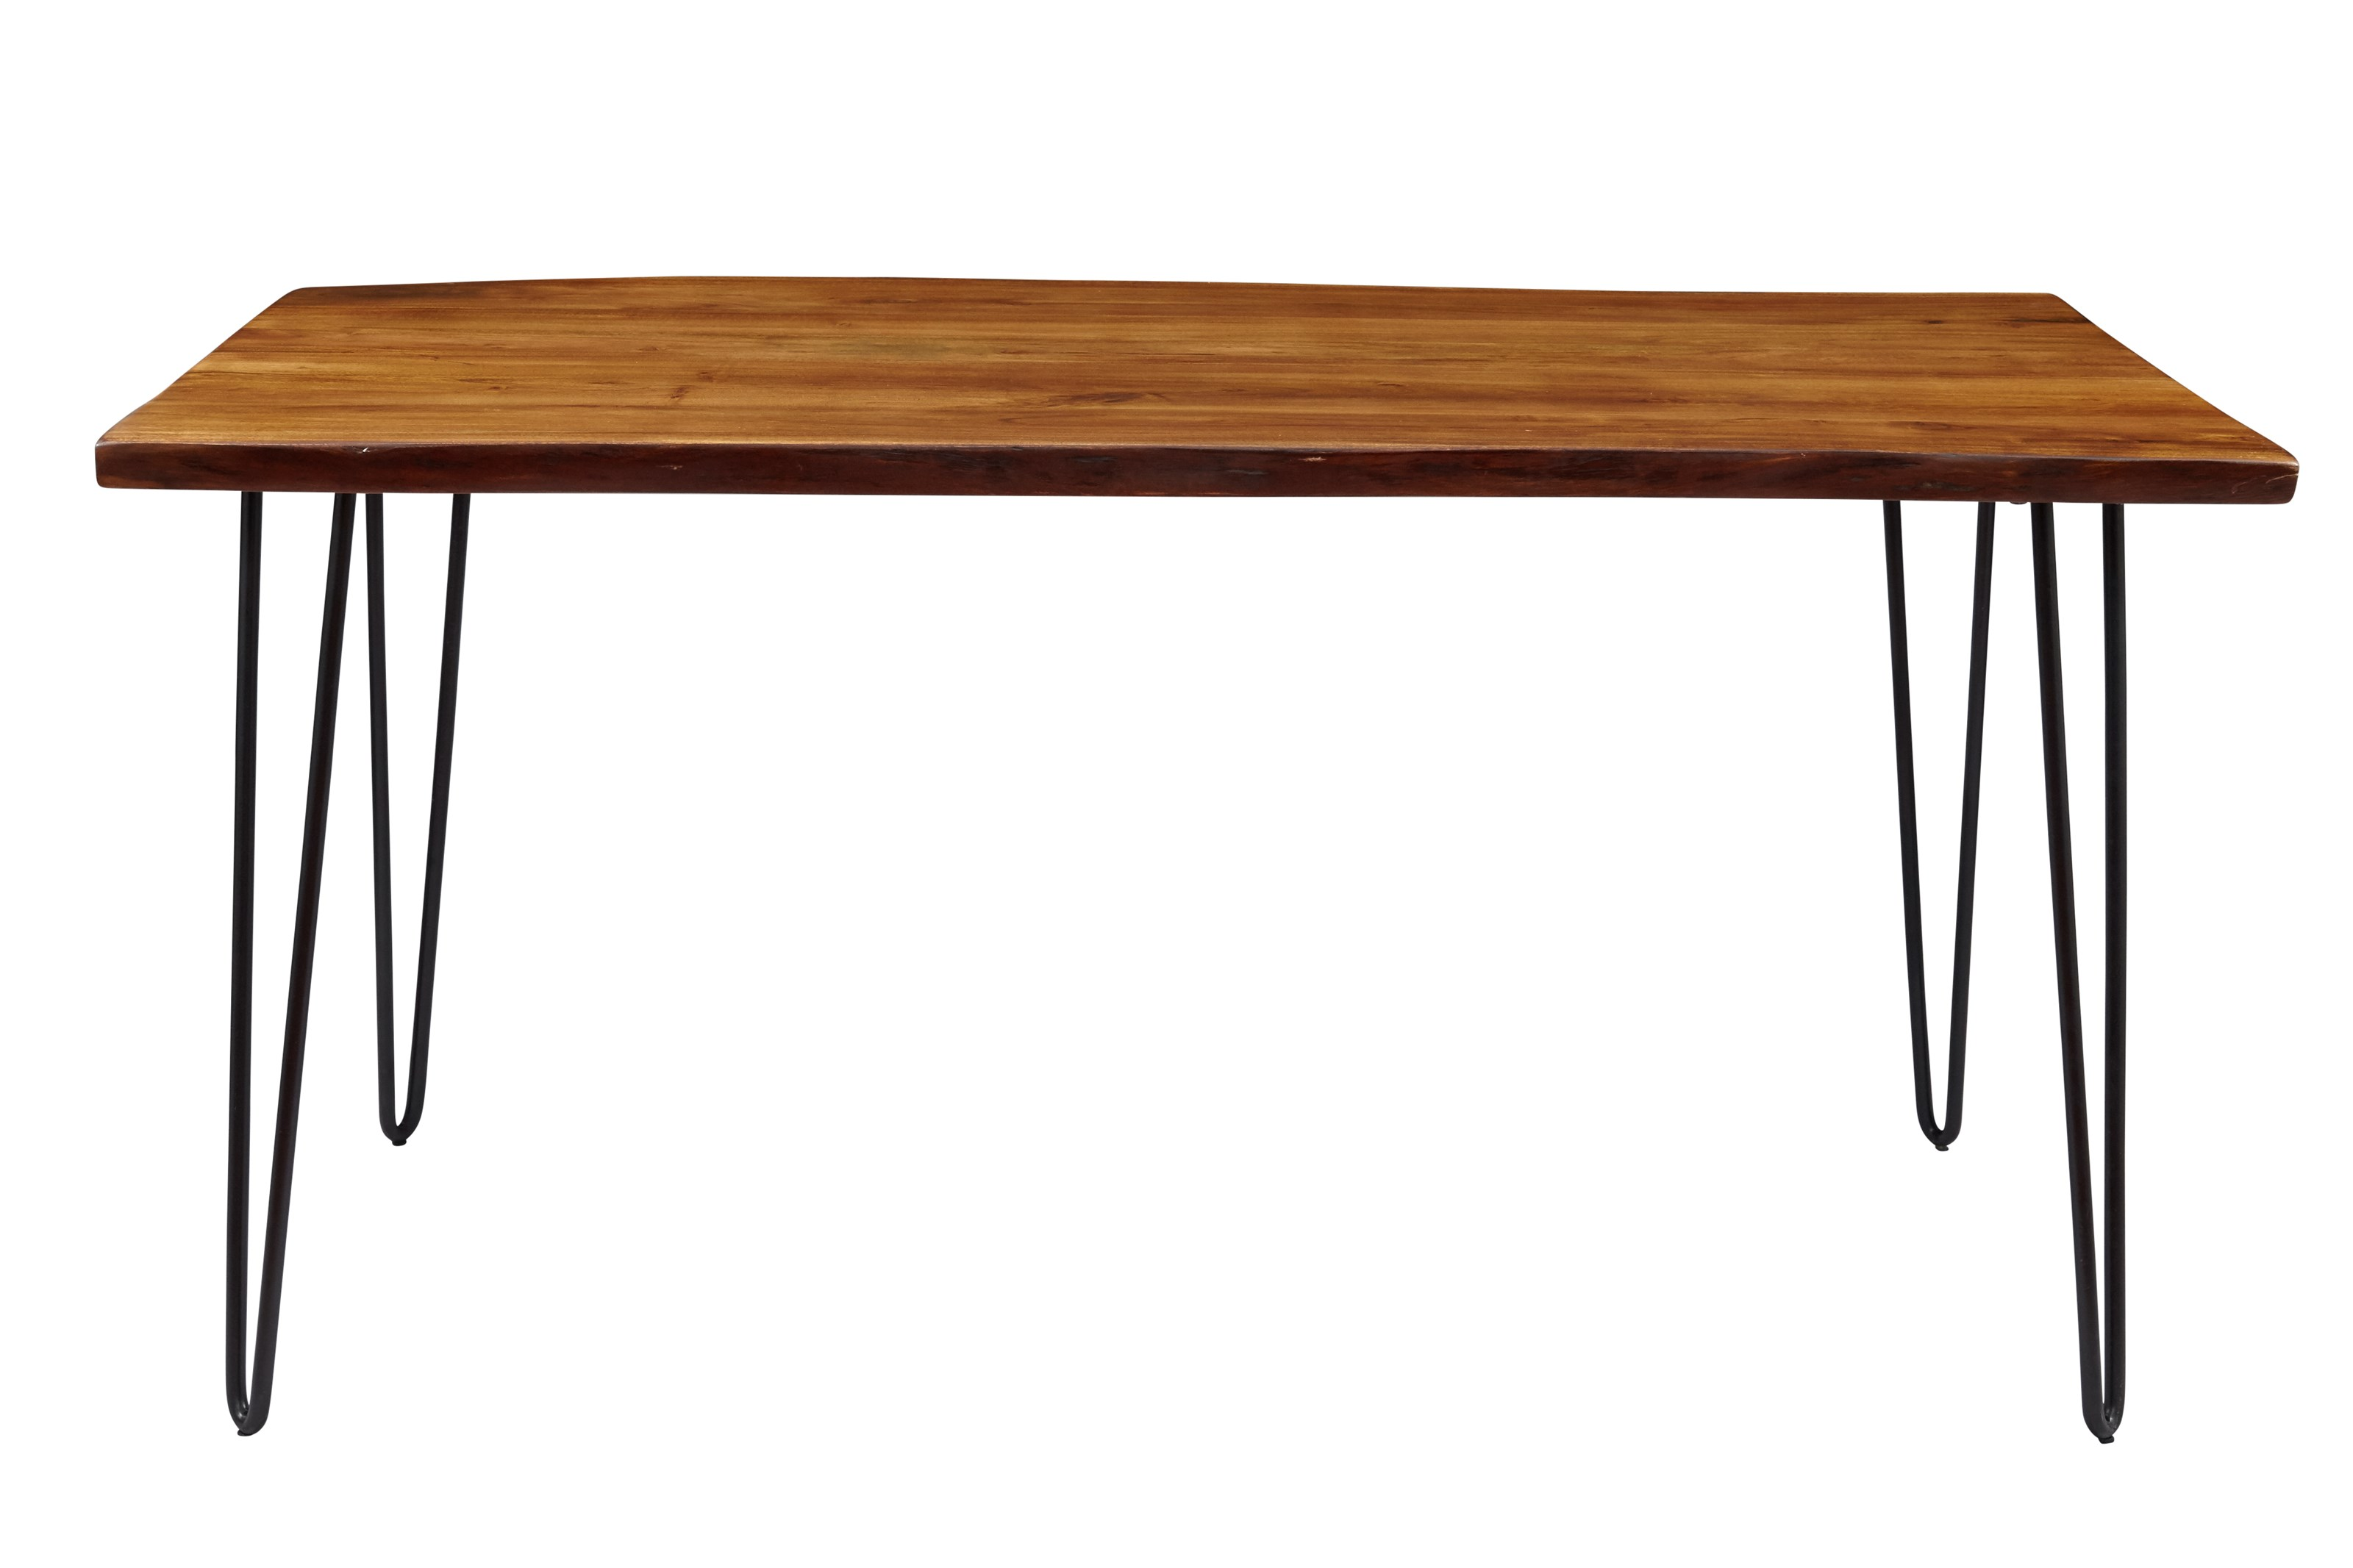 Nature's Edge Dining Table by Jofran at Red Knot